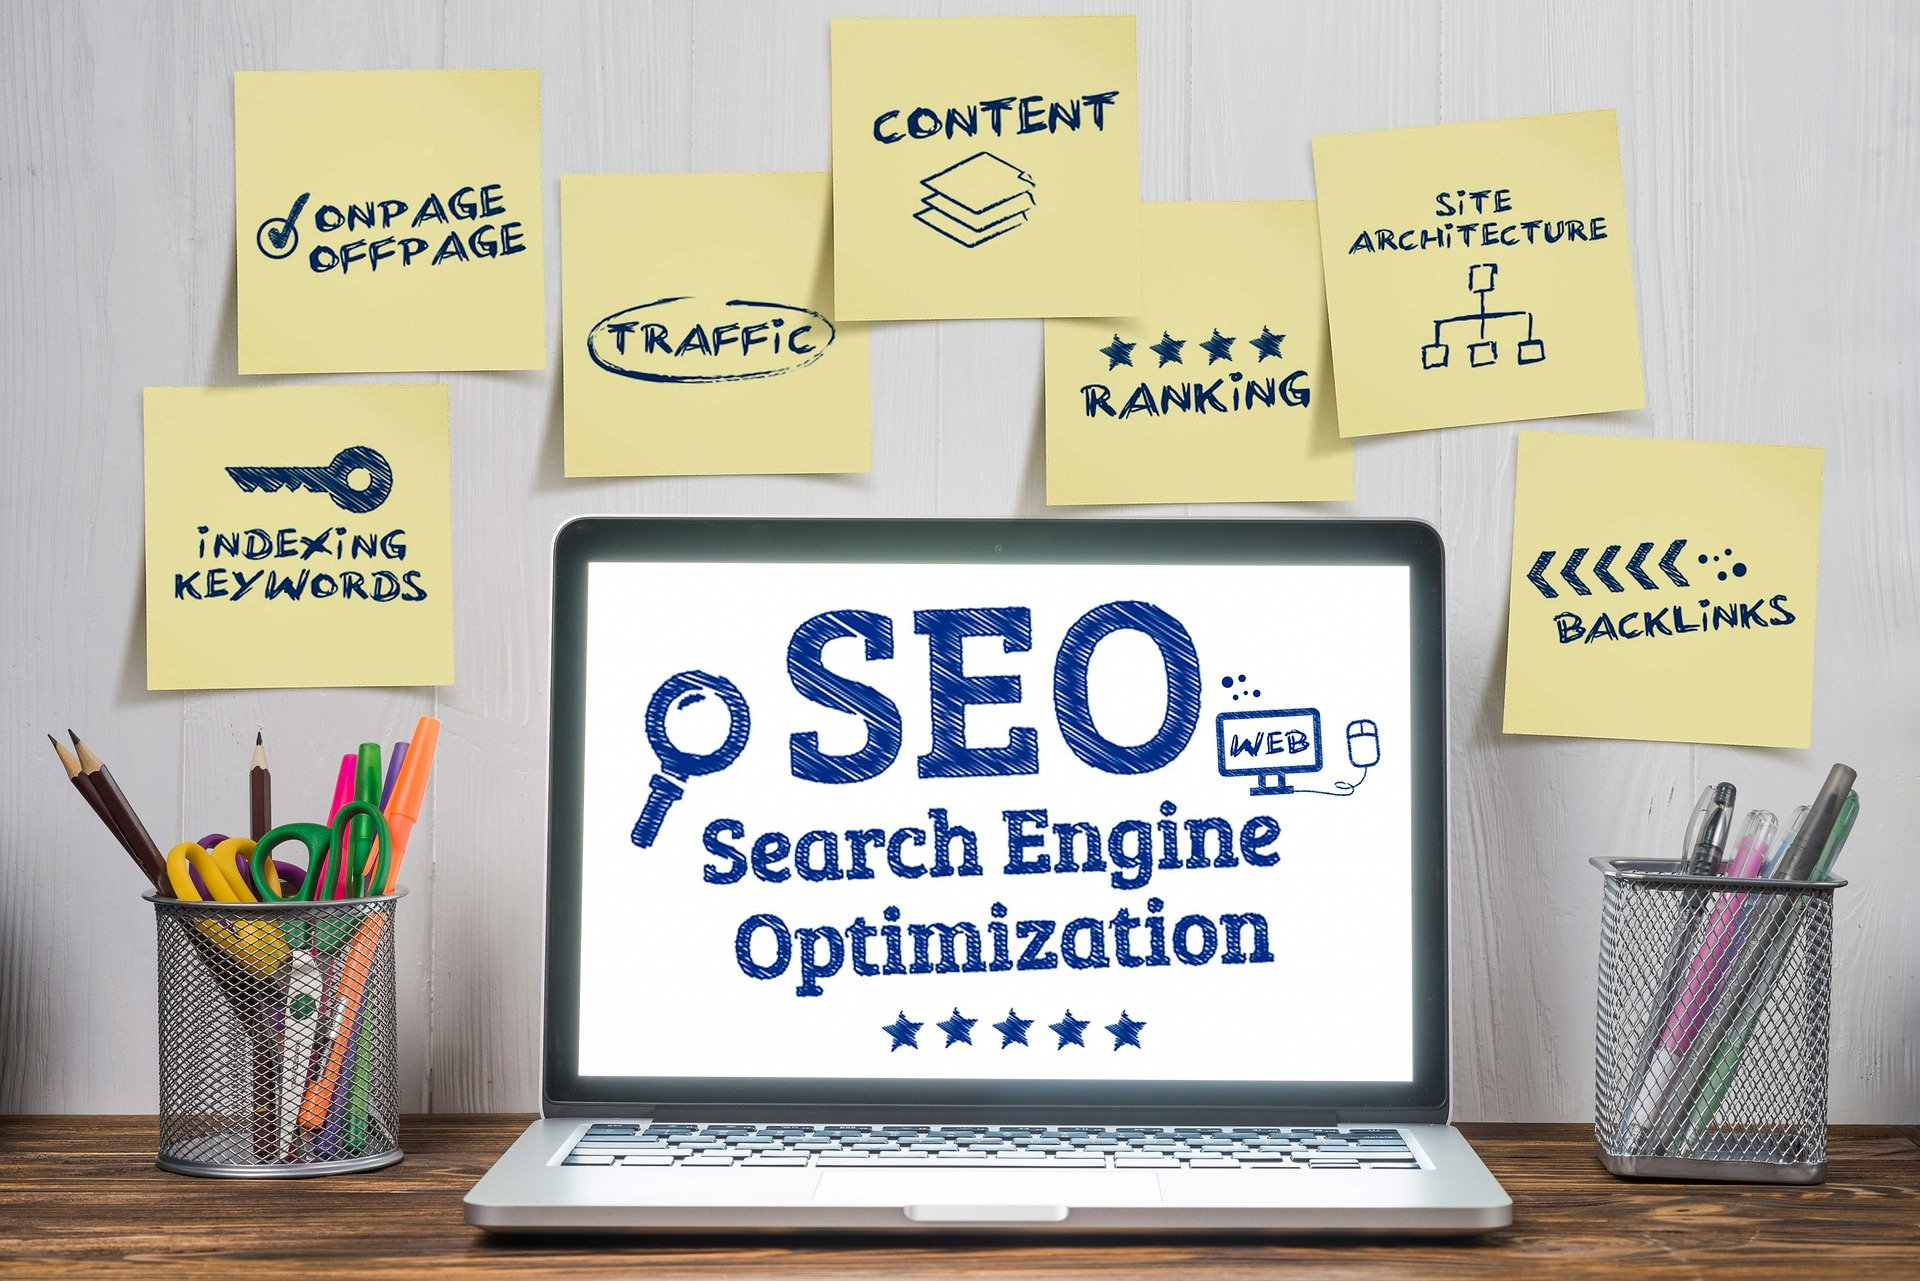 How to redesign a website without losing SEO? - OftenIt